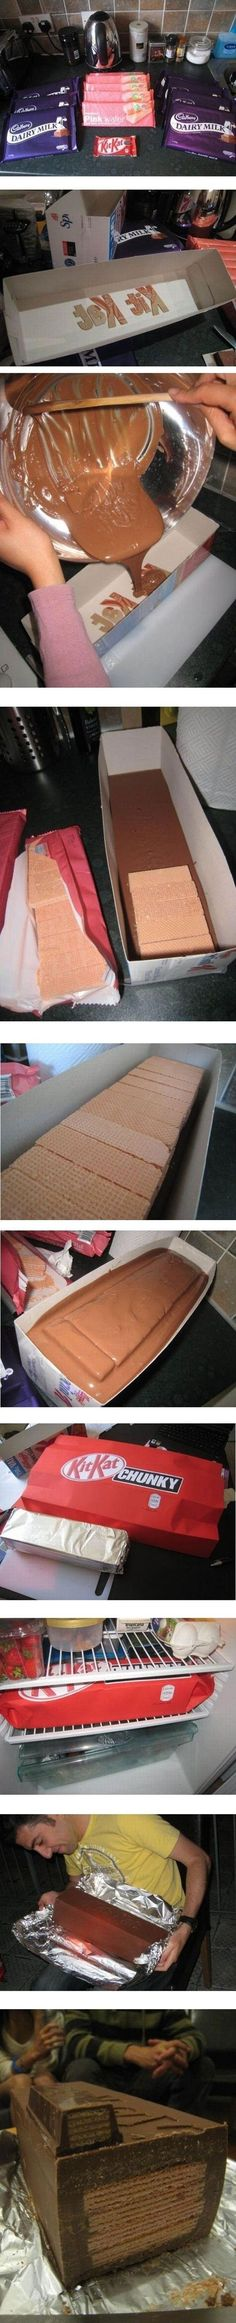 How to make a huge Kit Kat!! sinterklaas surprise idee